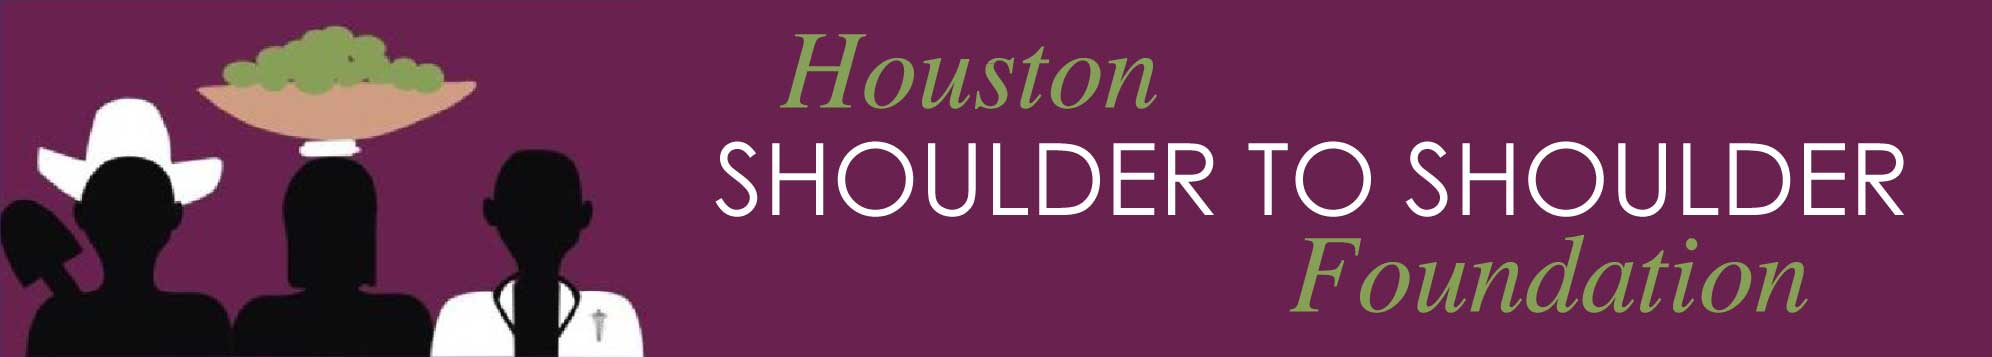 Houston Shoulder to Shoulder Foundation Logo